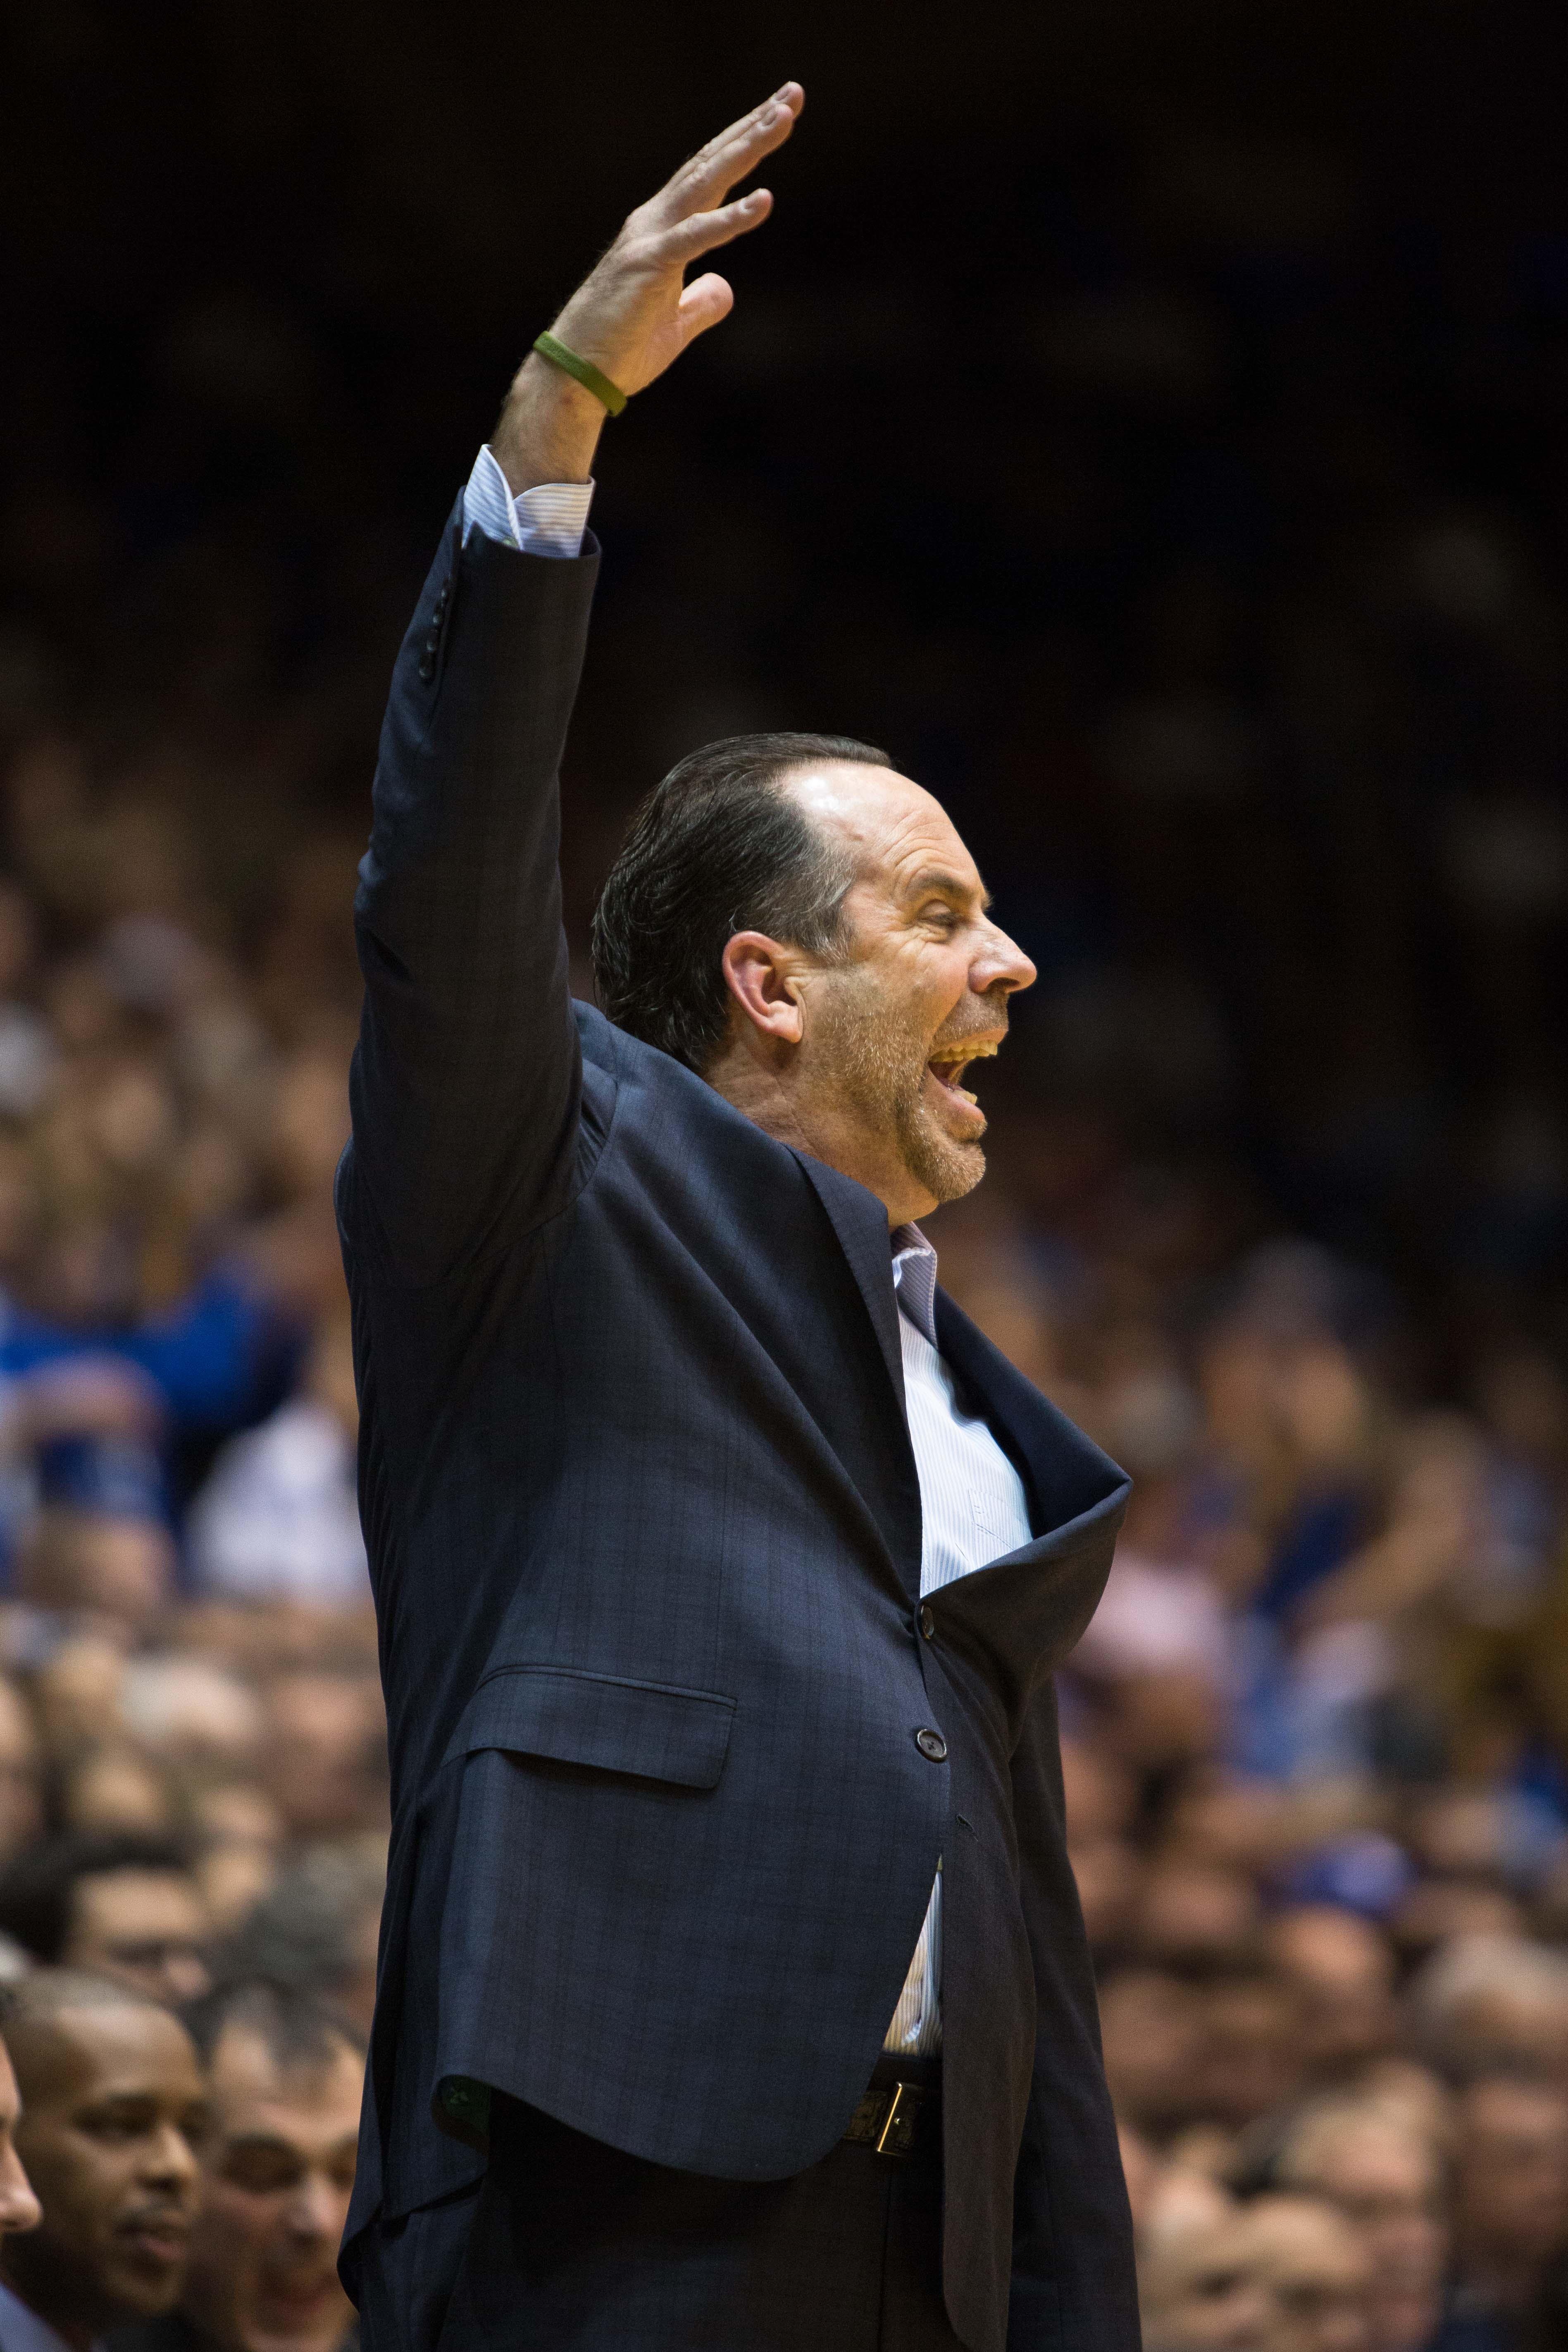 Notre Dame head basketball coach Mike Brey shouts to an official during the first half of an NCAA college basketball game against Duke at Cameron Indoor Stadium in Durham, N.C., Saturday, Jan. 16, 2016. (AP Photo/Ben McKeown)